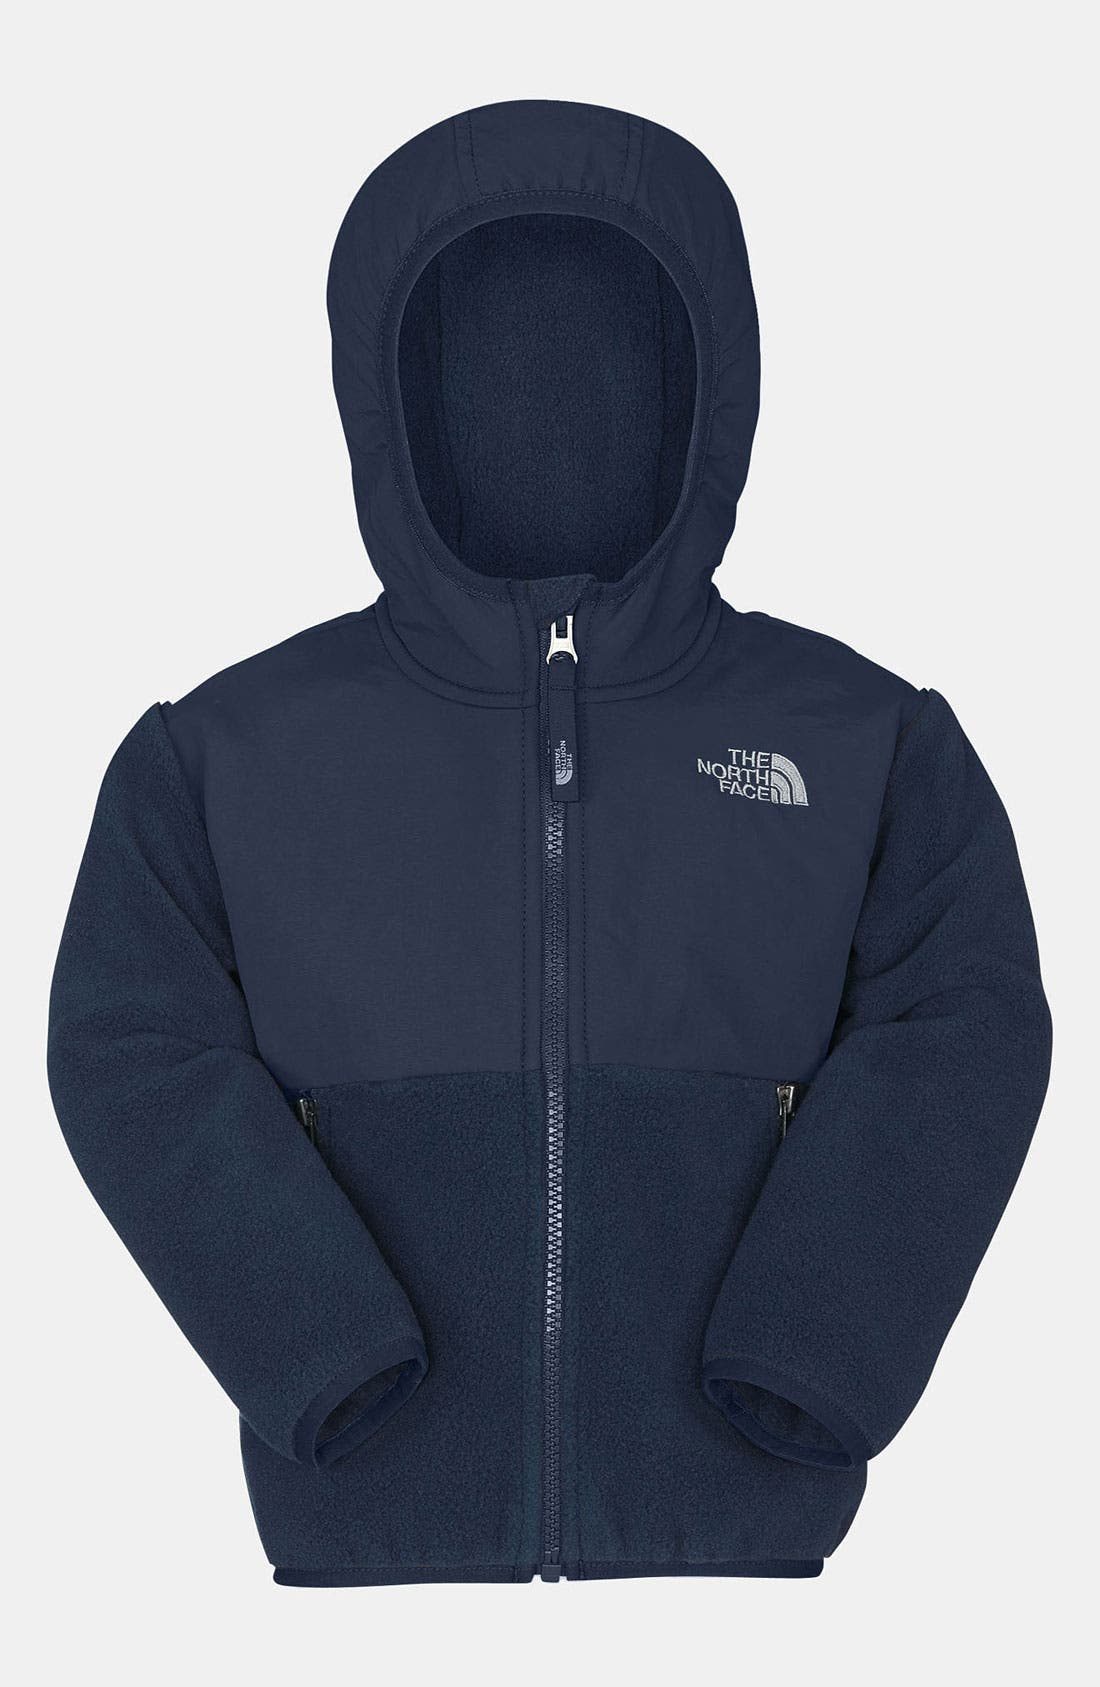 Alternate Image 1 Selected - The North Face Denali Fleece Hoodie (Big Girls)